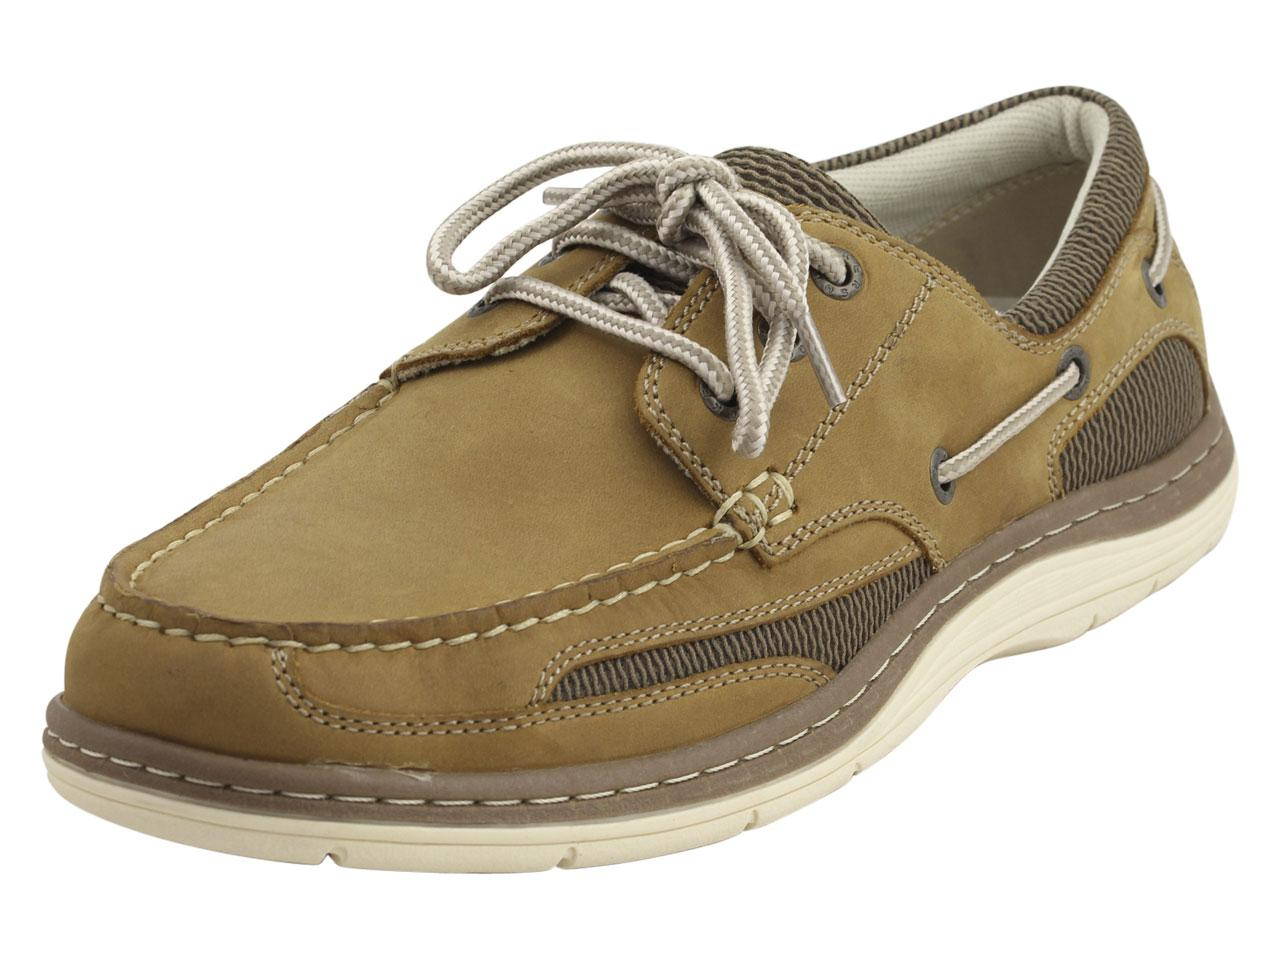 Image of Dockers Men's Lakeport Memory Foam Loafers Boat Shoes - Brown - 10 D(M) US